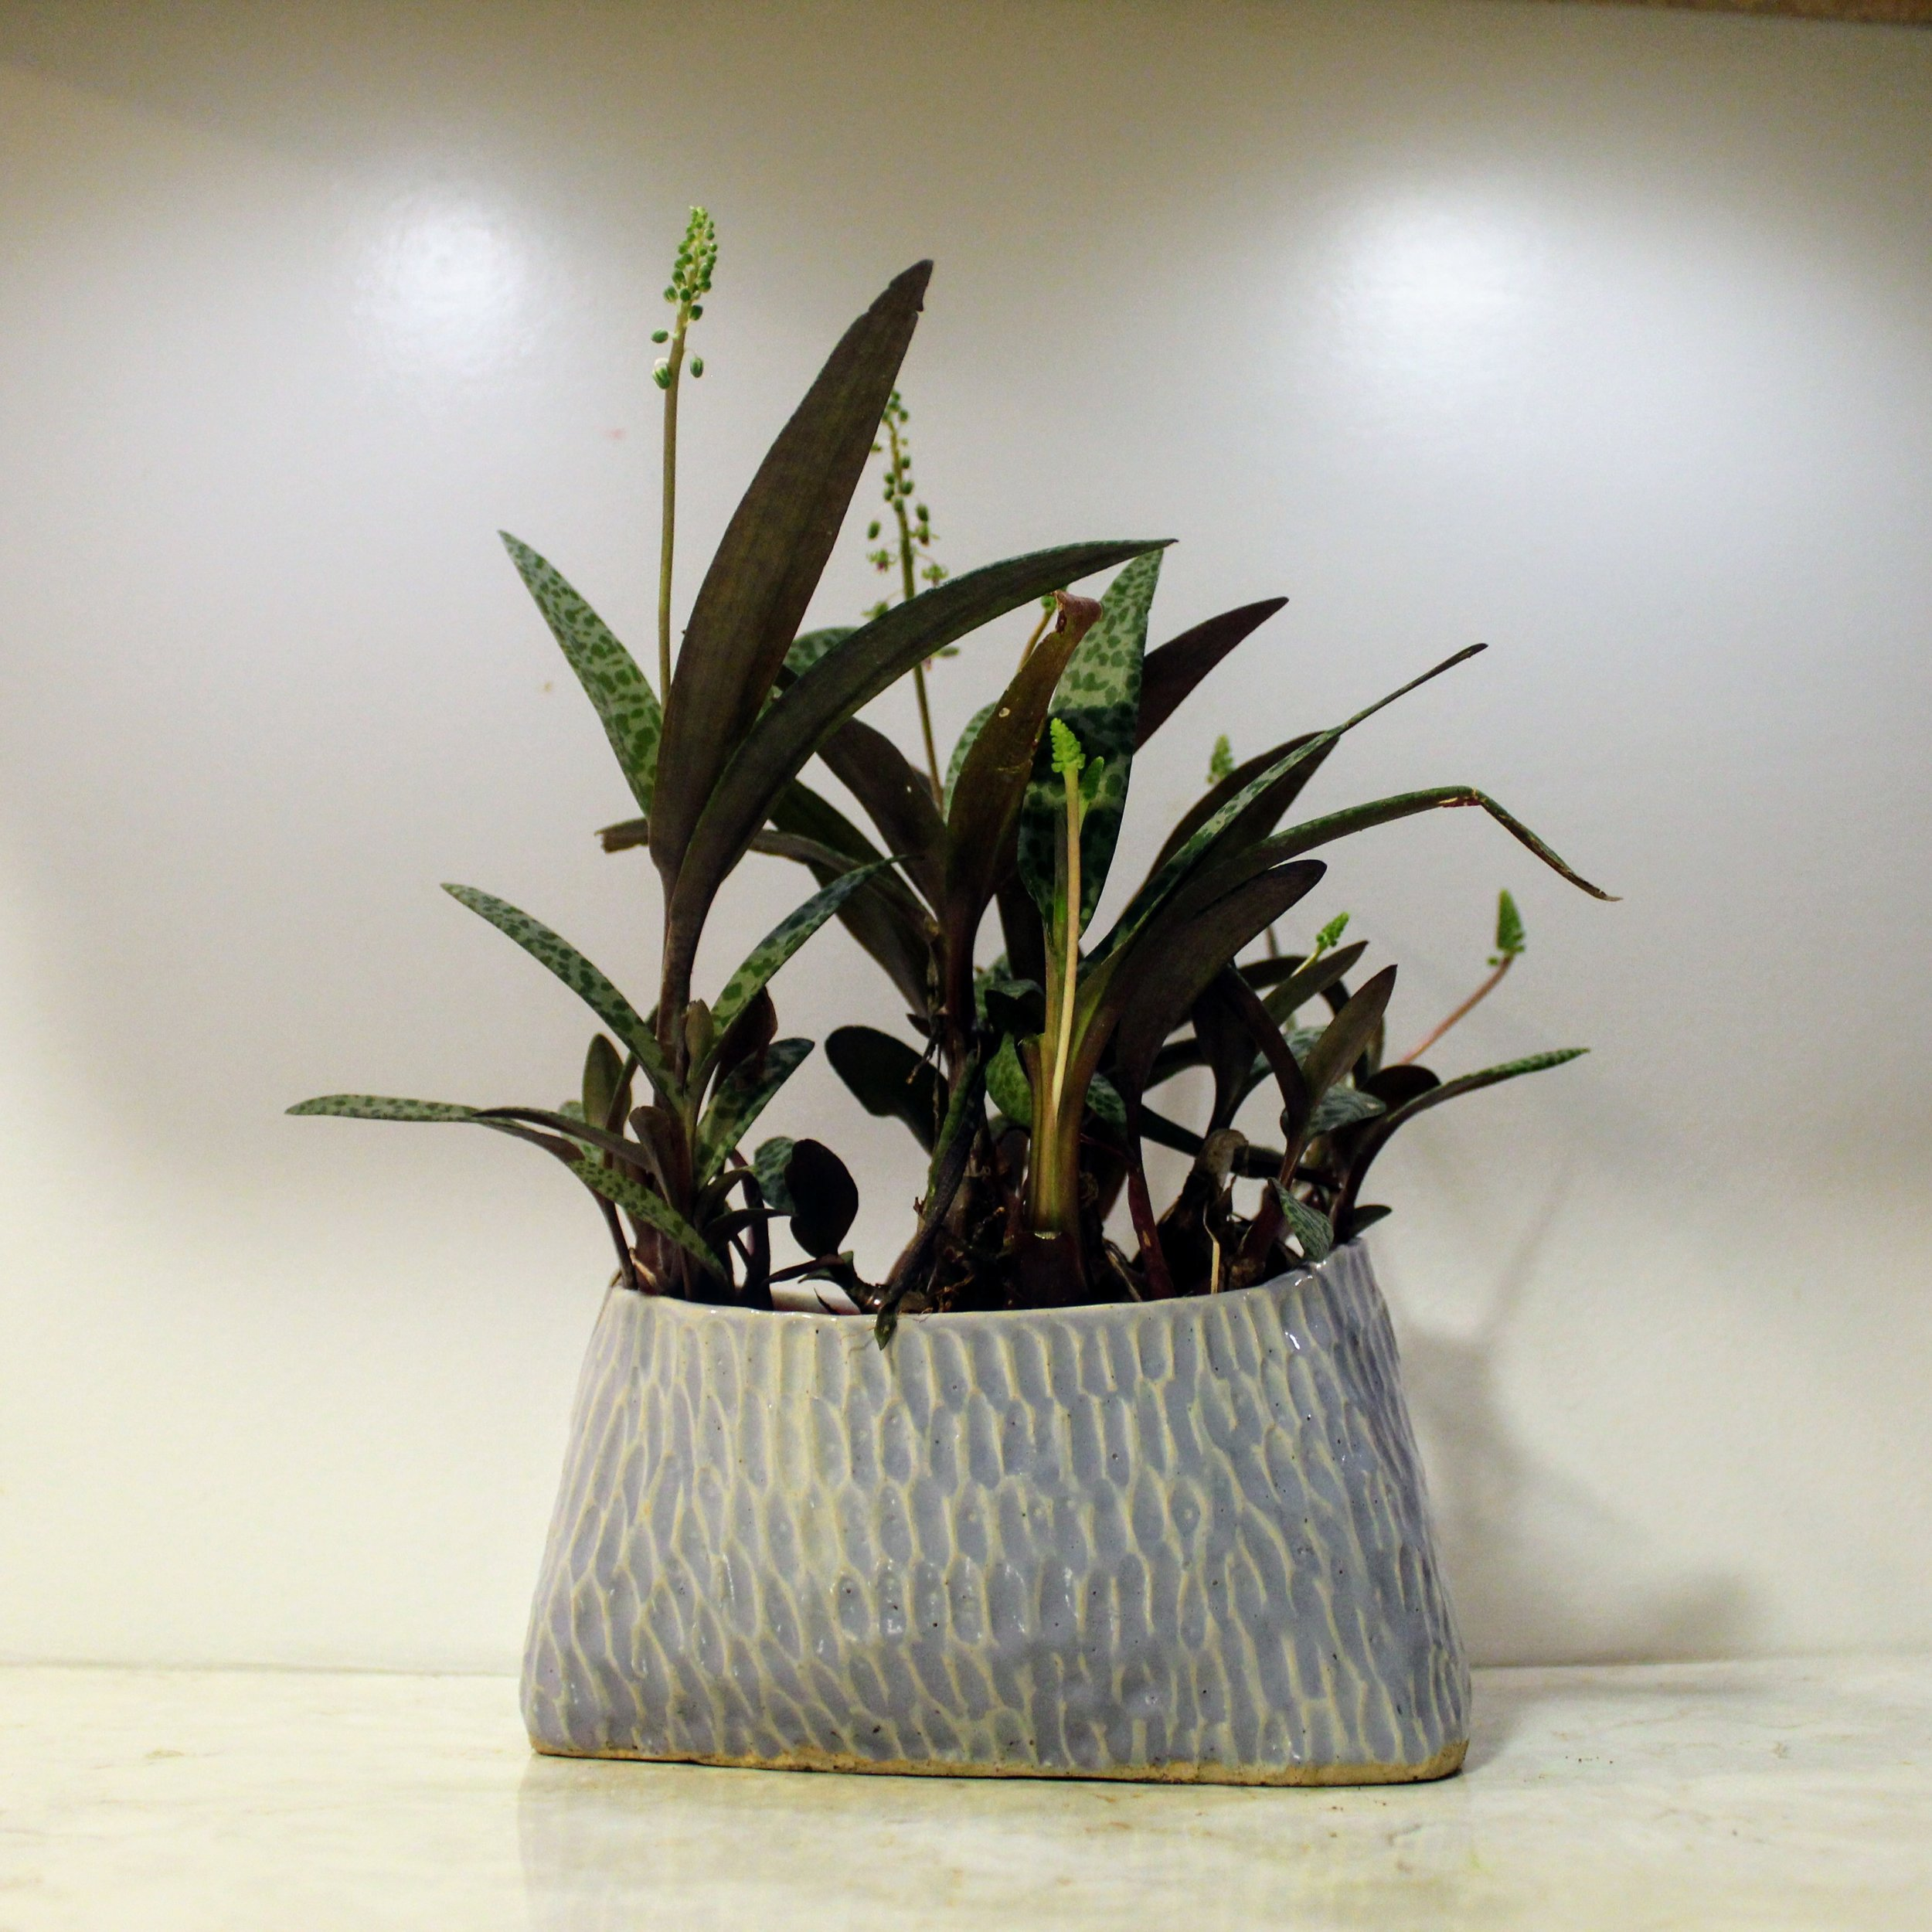 ninth ward nursery - potted plant1.jpg